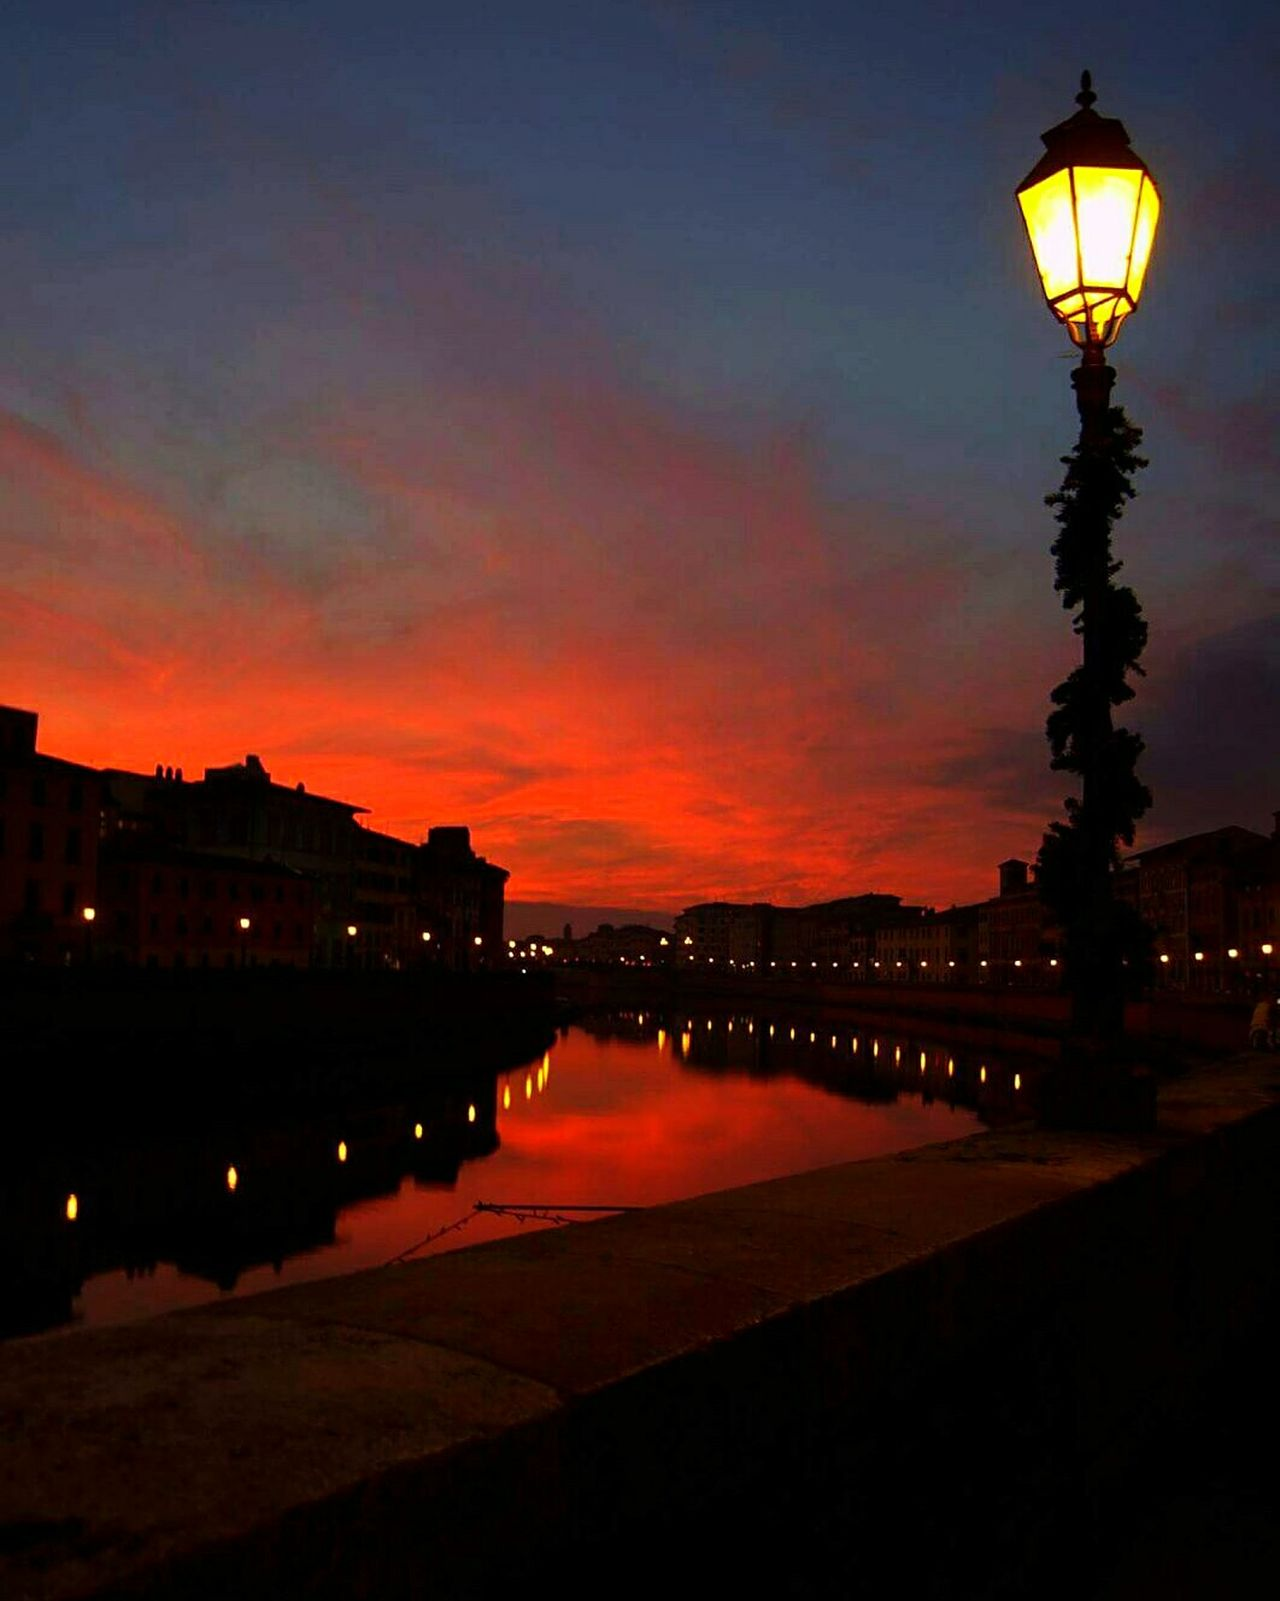 Reflection Sunset Water Nature City Illuminated Outdoors Sky River Taking Photos River View River Collection Colors Colour Pisa Pisa Italy Italy Night Scenics Light Shadow Light Light And Shadow Lights